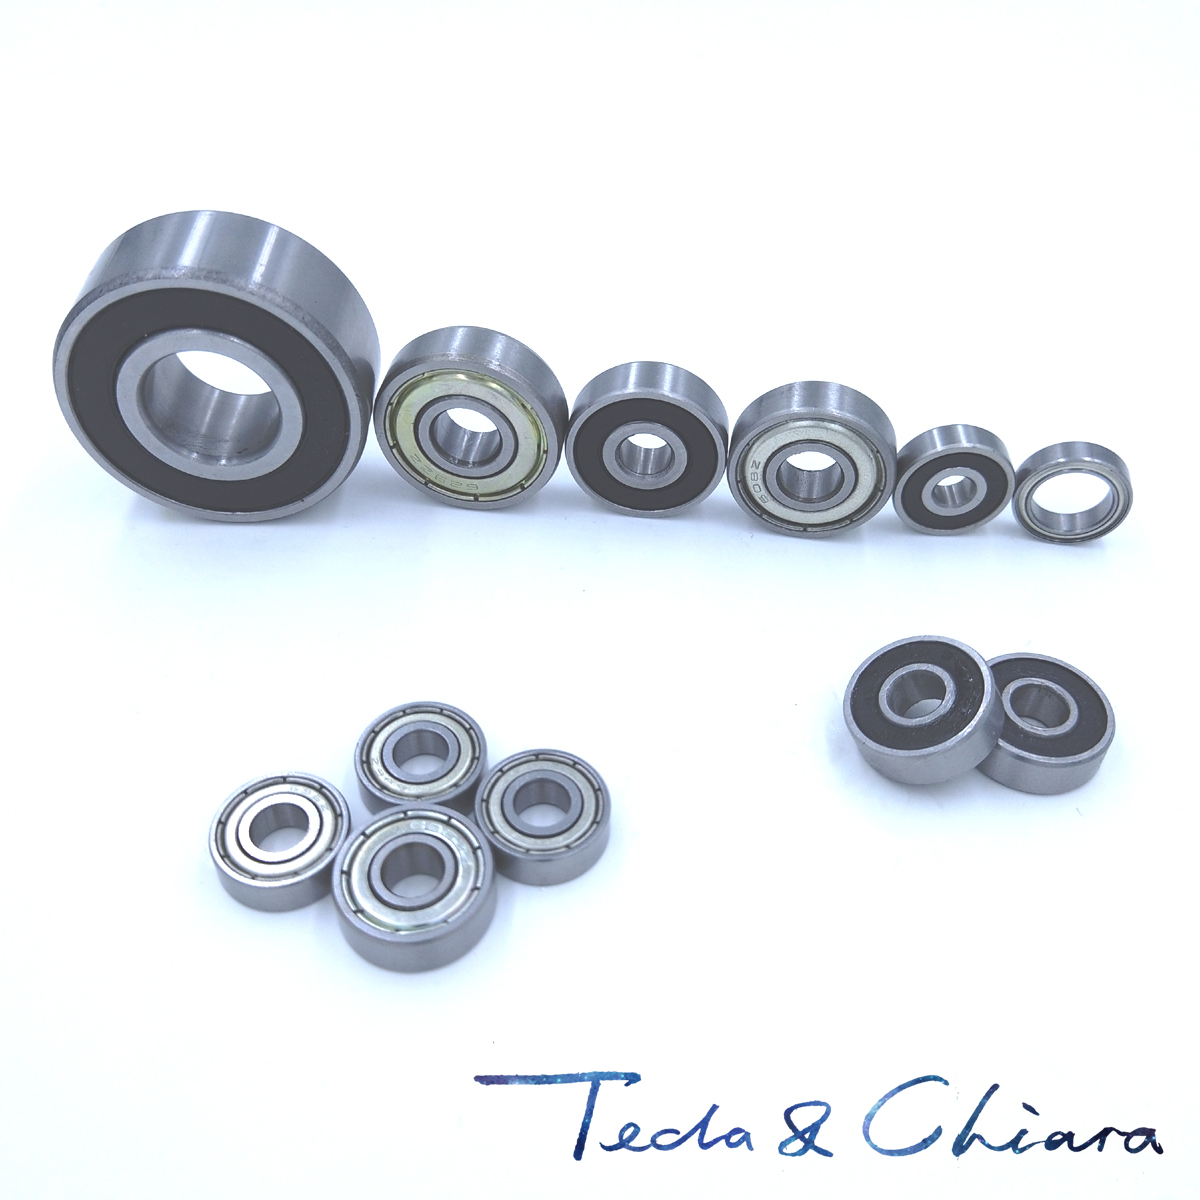 10Pcs 6200 6200ZZ <font><b>6200RS</b></font> 6200-2Z 6200Z 6200-2RS ZZ RS RZ 2RZ Deep Groove Ball Bearings 10 x 30 x 9mm High Quality image